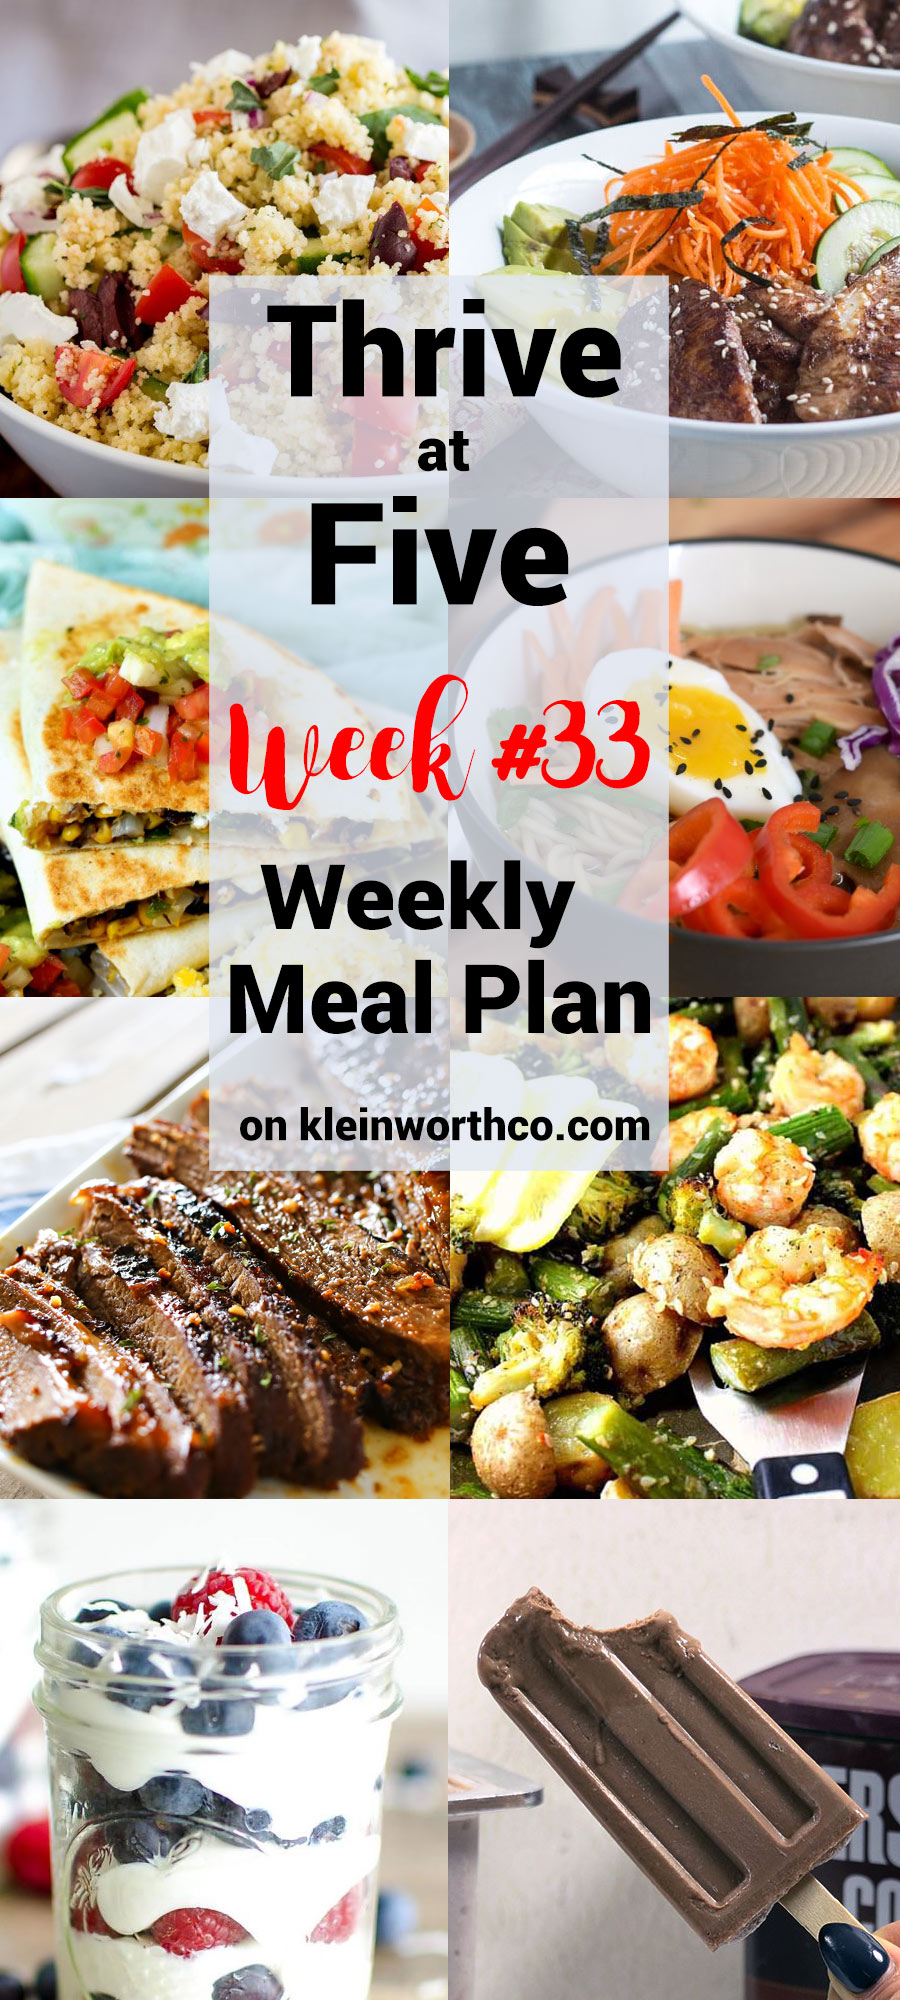 Thrive at Five Meal Plan Week 33